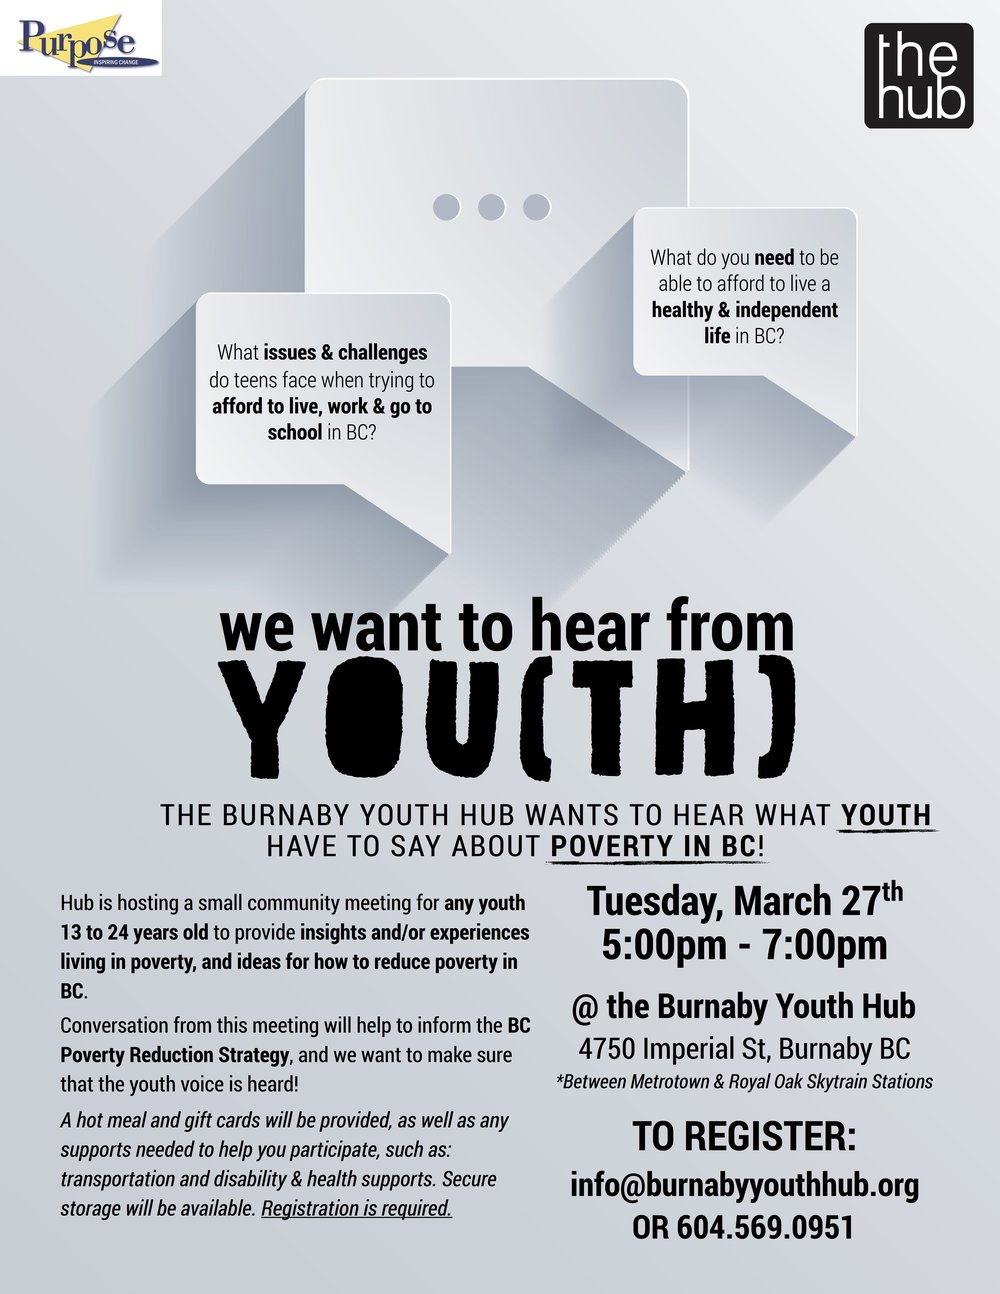 Youth Poverty Reduction Community Meeting Poster.jpg